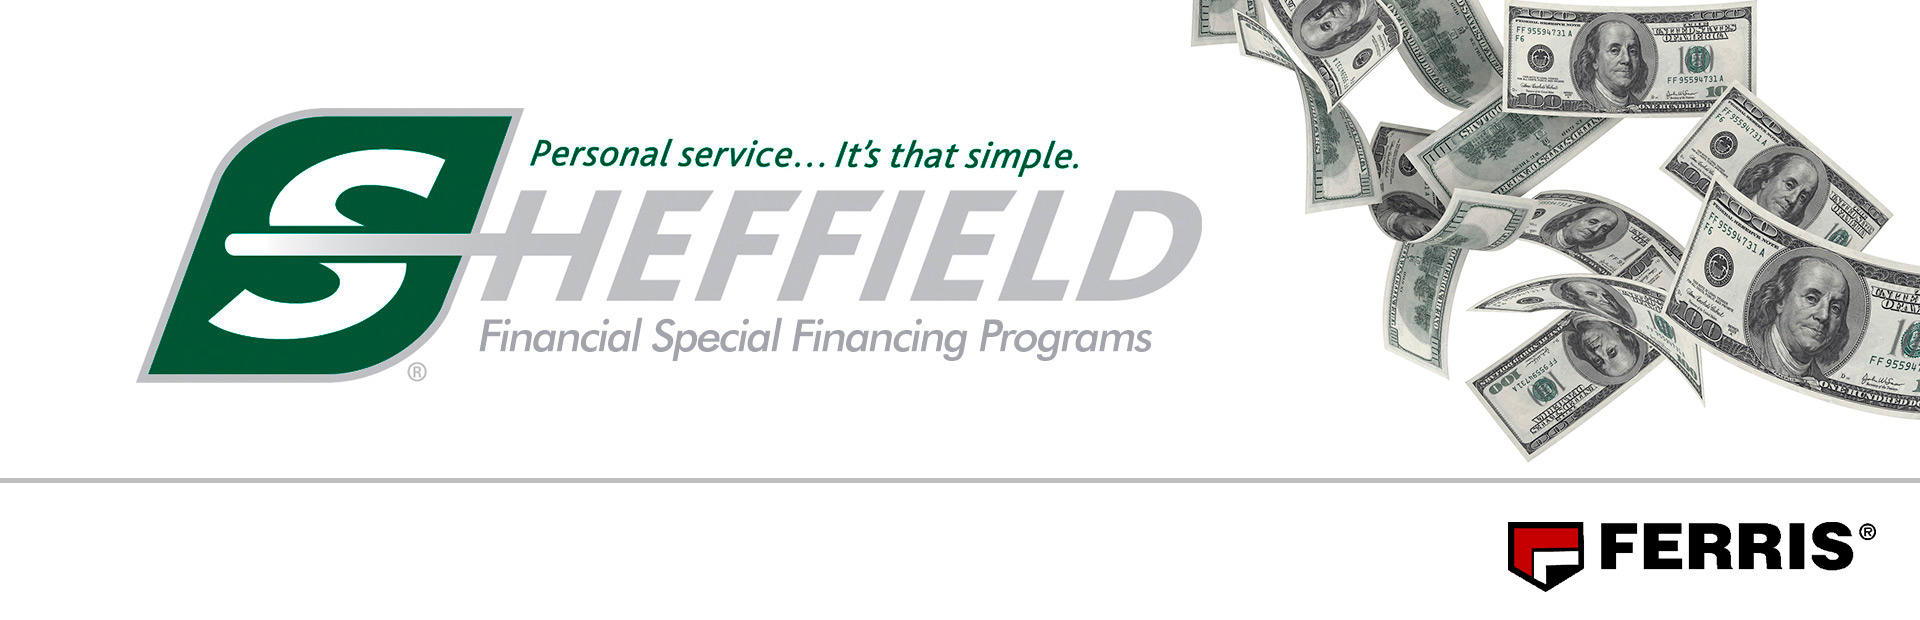 Ferris: Sheffield Financial Programs